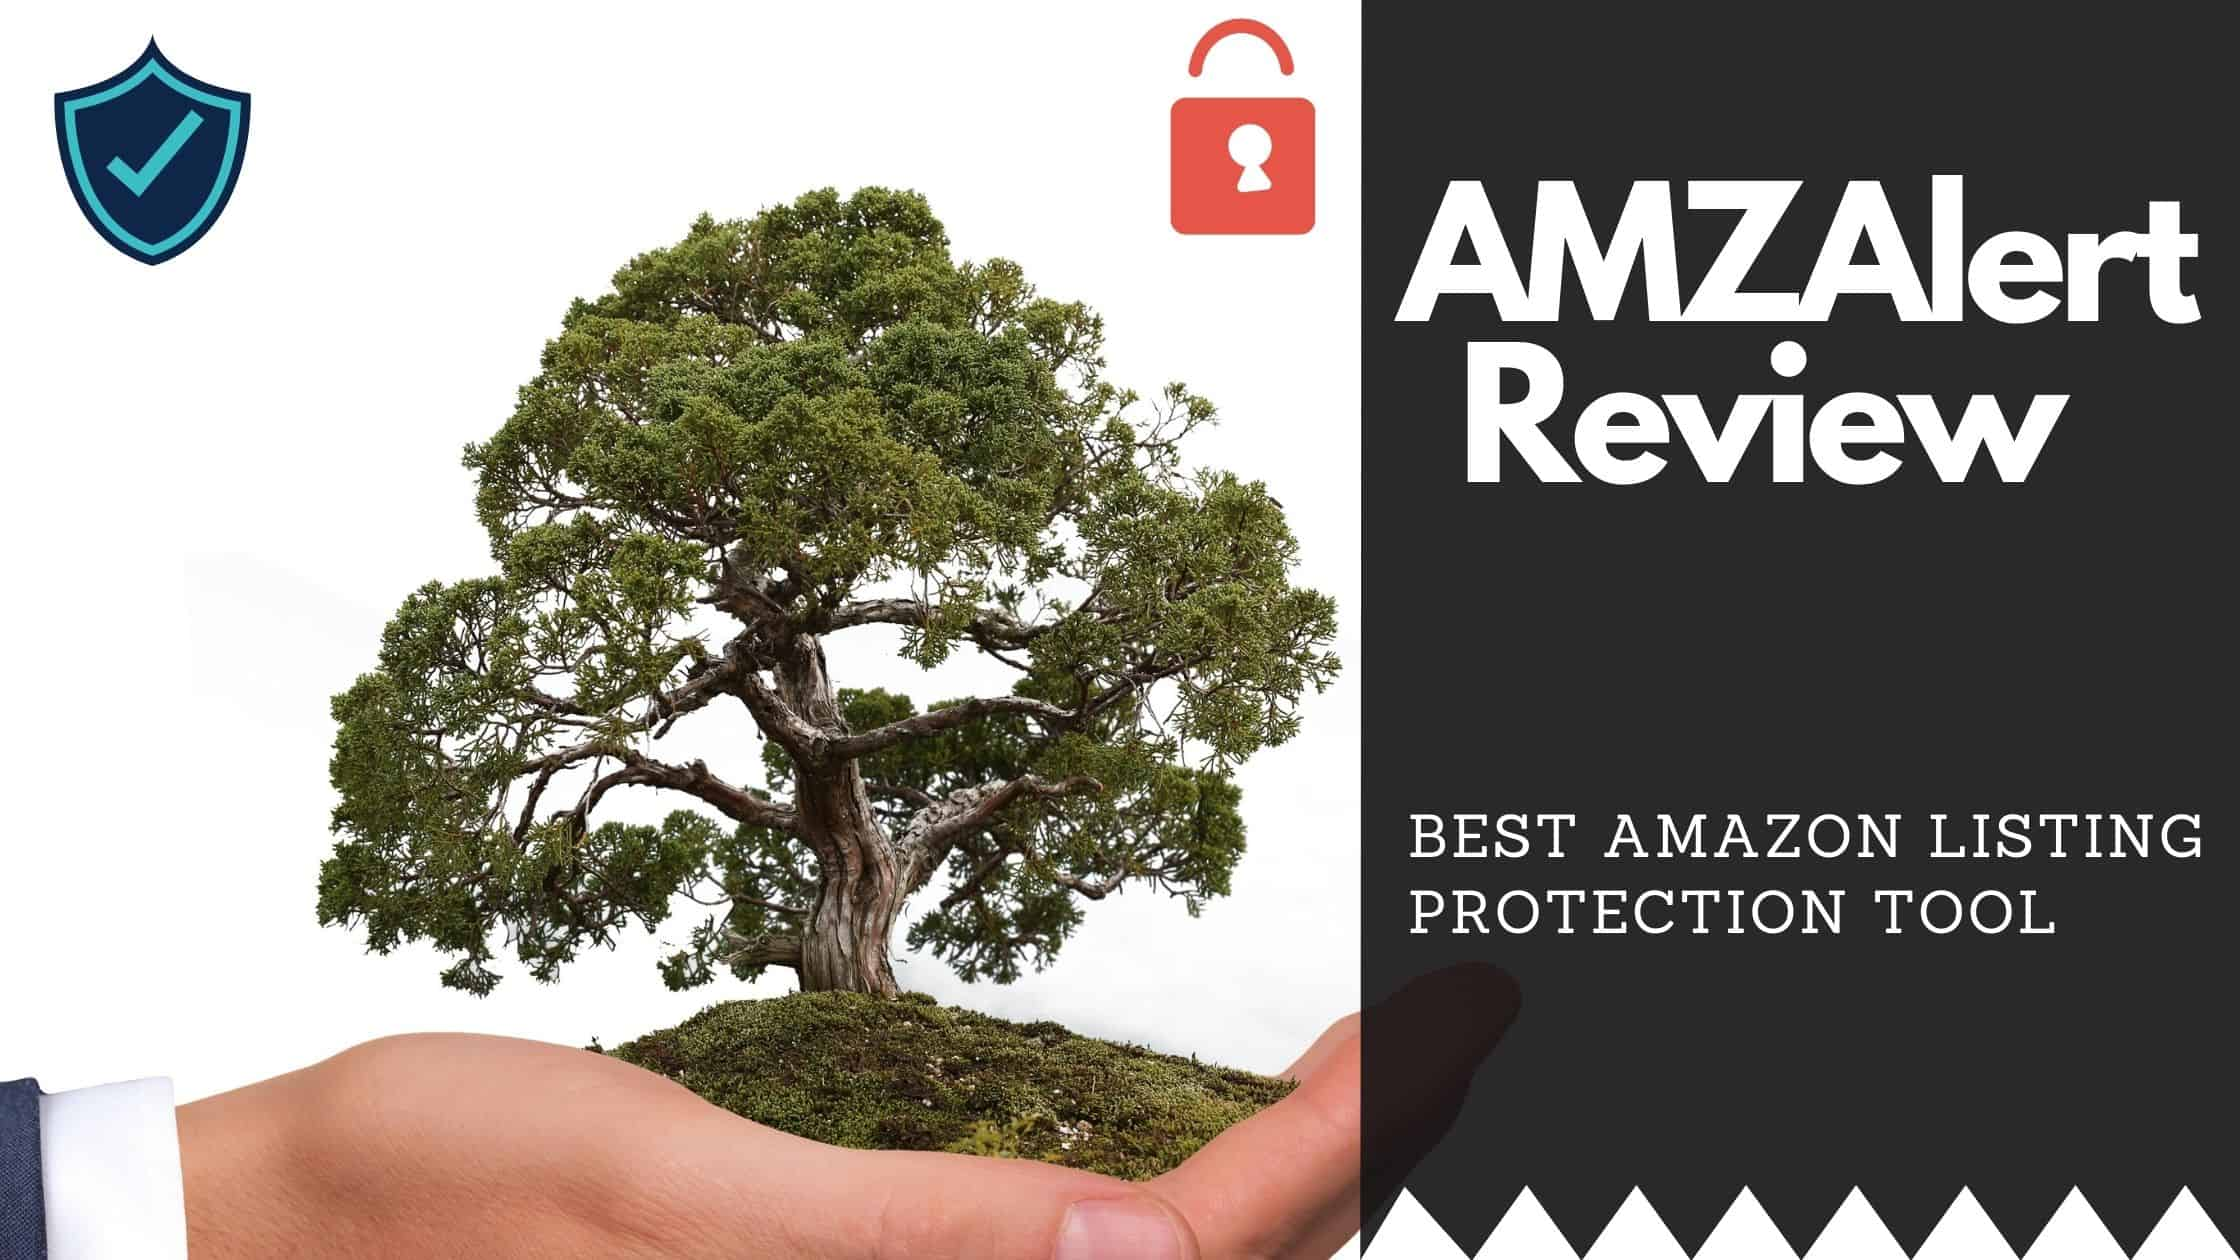 AMZAlert Review 2021 - Best Amazon Listing Protection Tool